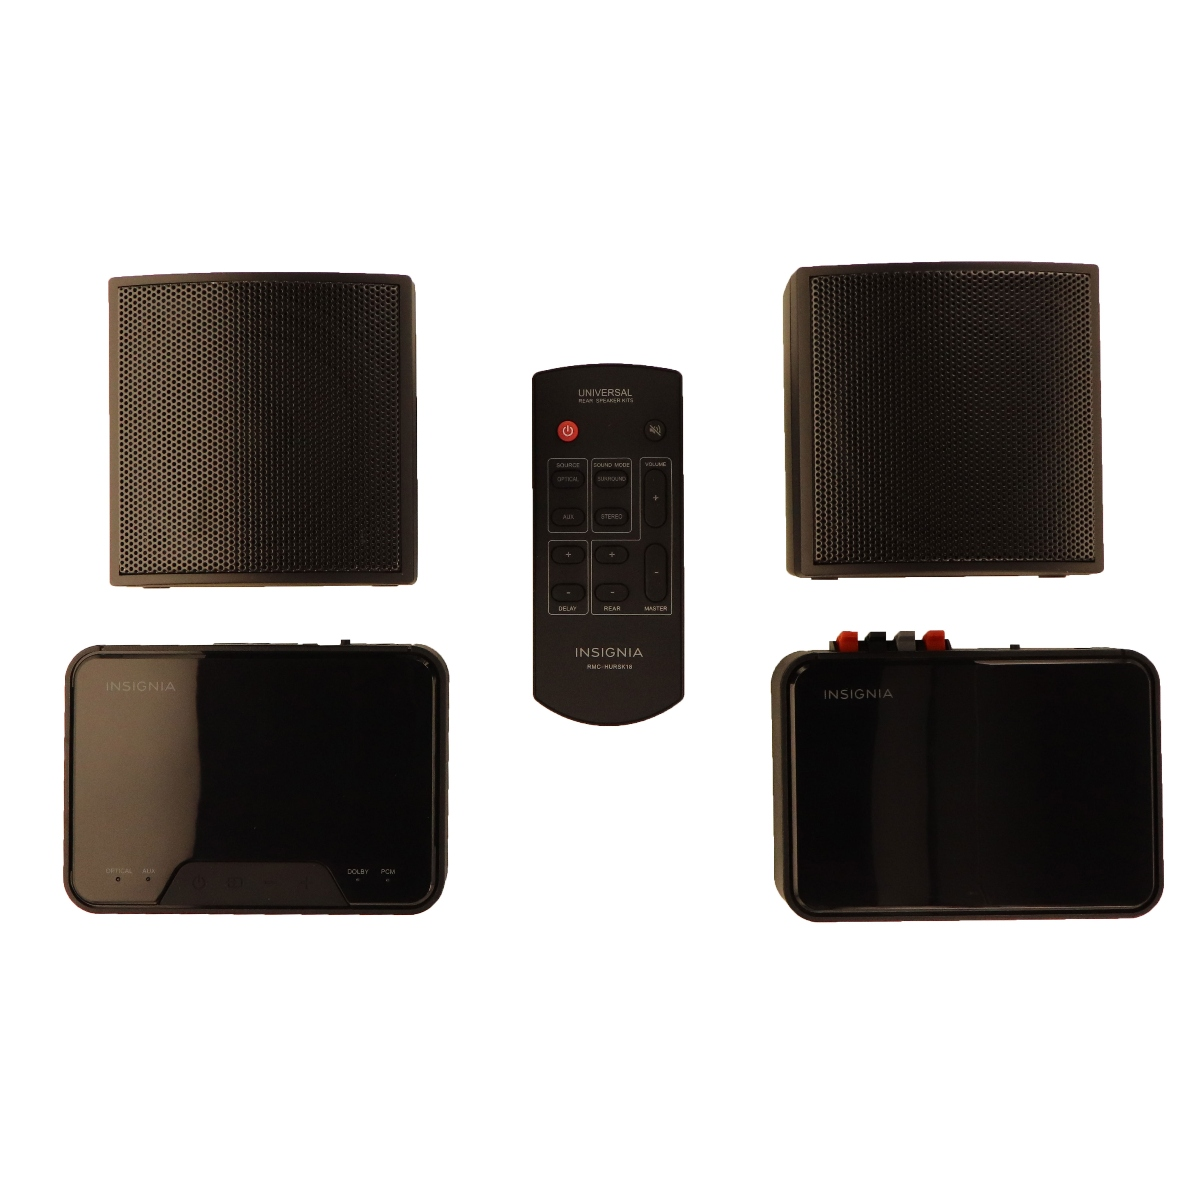 Insignia Universal Dolby Audio Wireless Rear Speaker Kit with 2 Speakers - Black